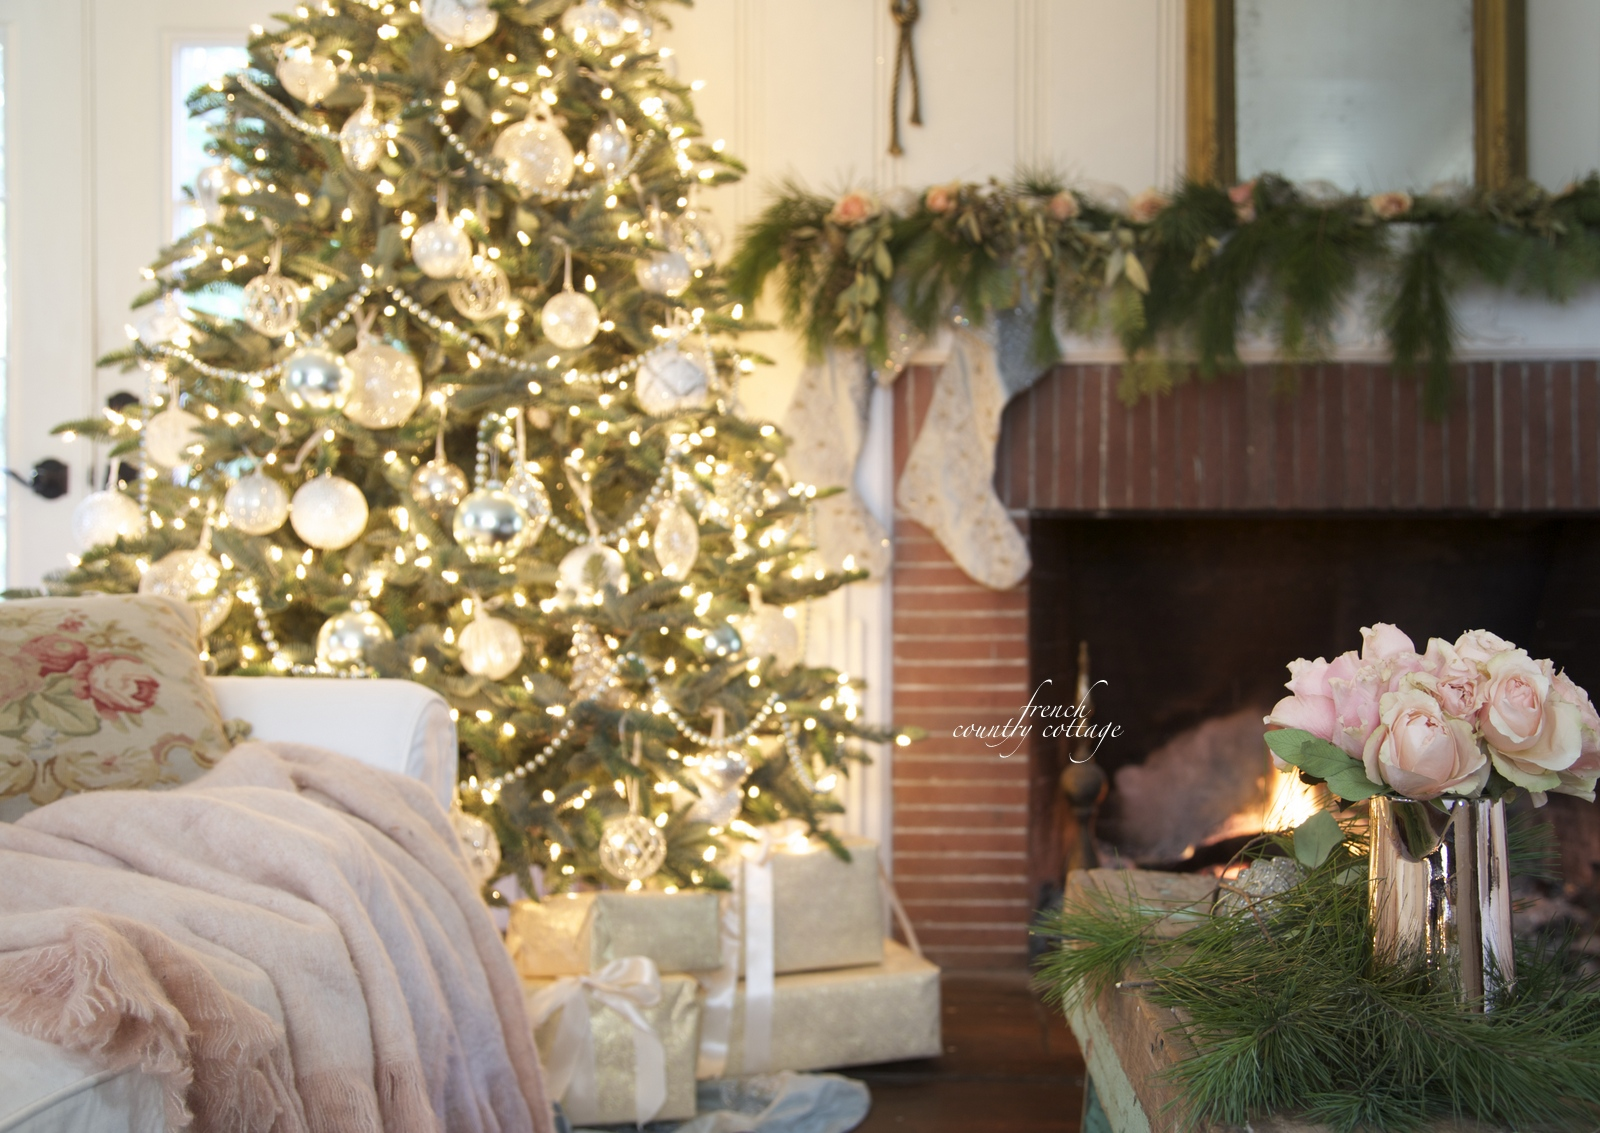 french country cottage decorating ideas french country cottage christmas home holiday decorating UQWDNAU